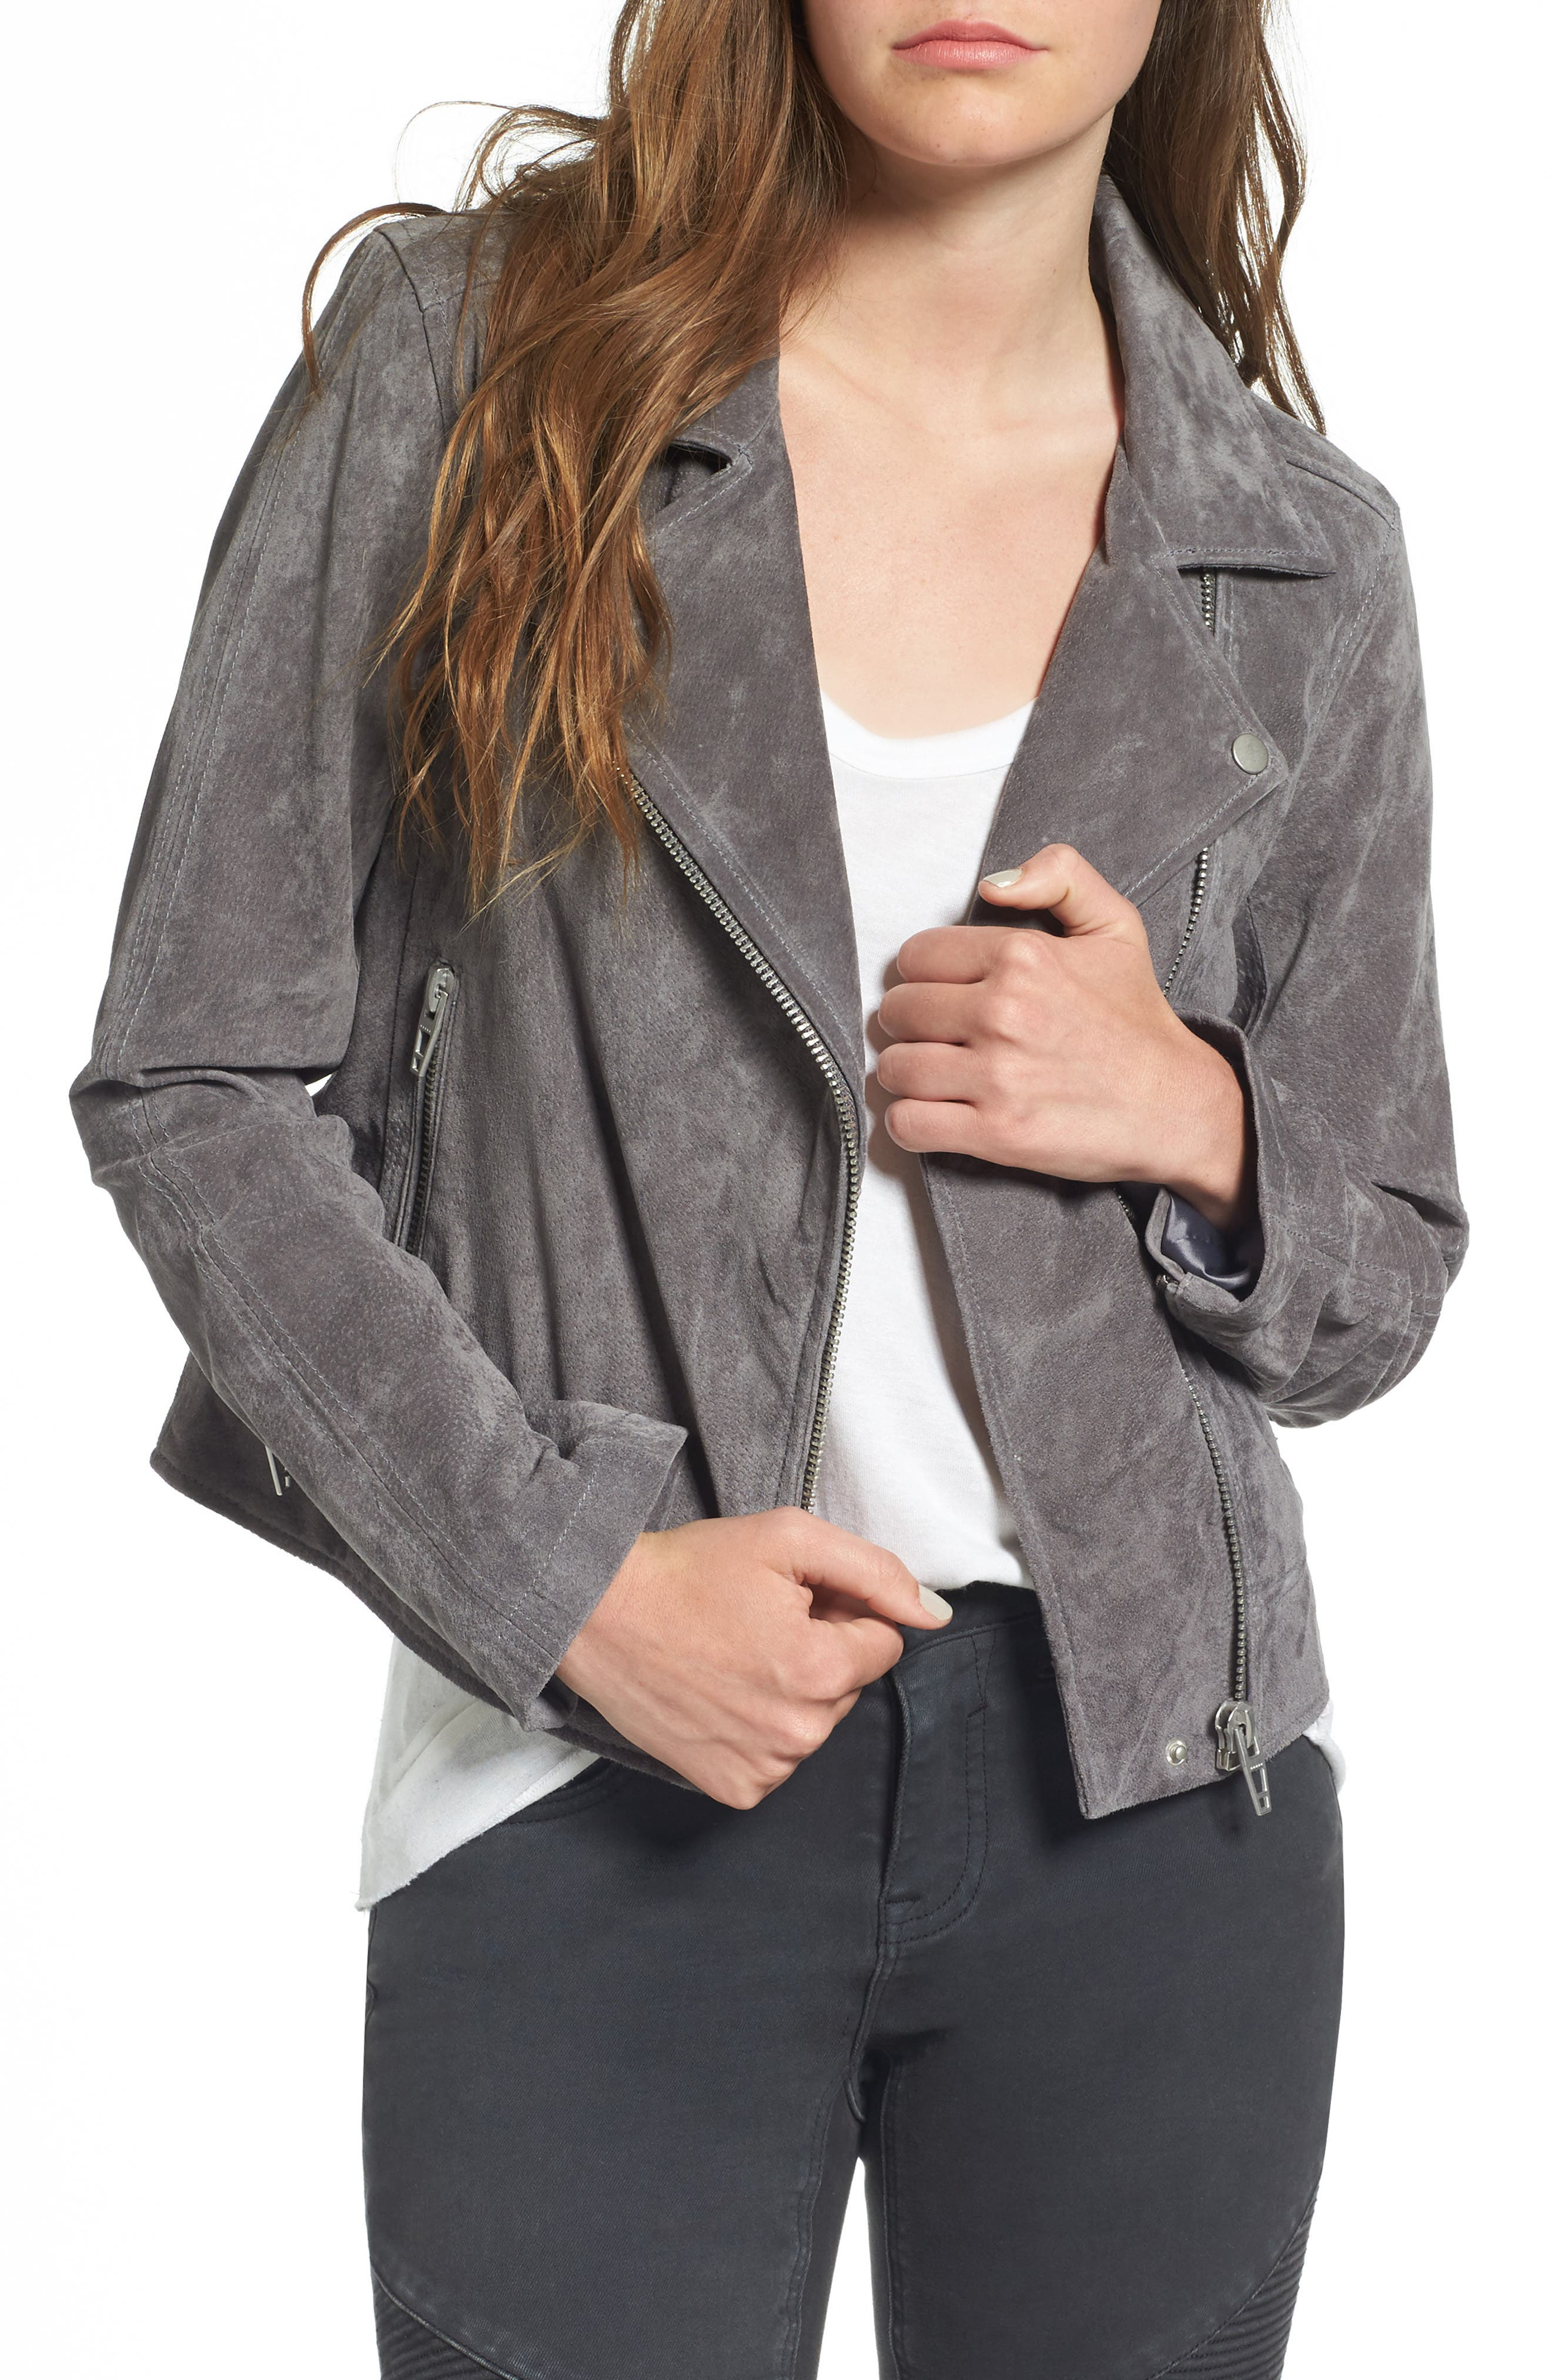 Women's Grey Leather & Faux-Coats | Nordstrom